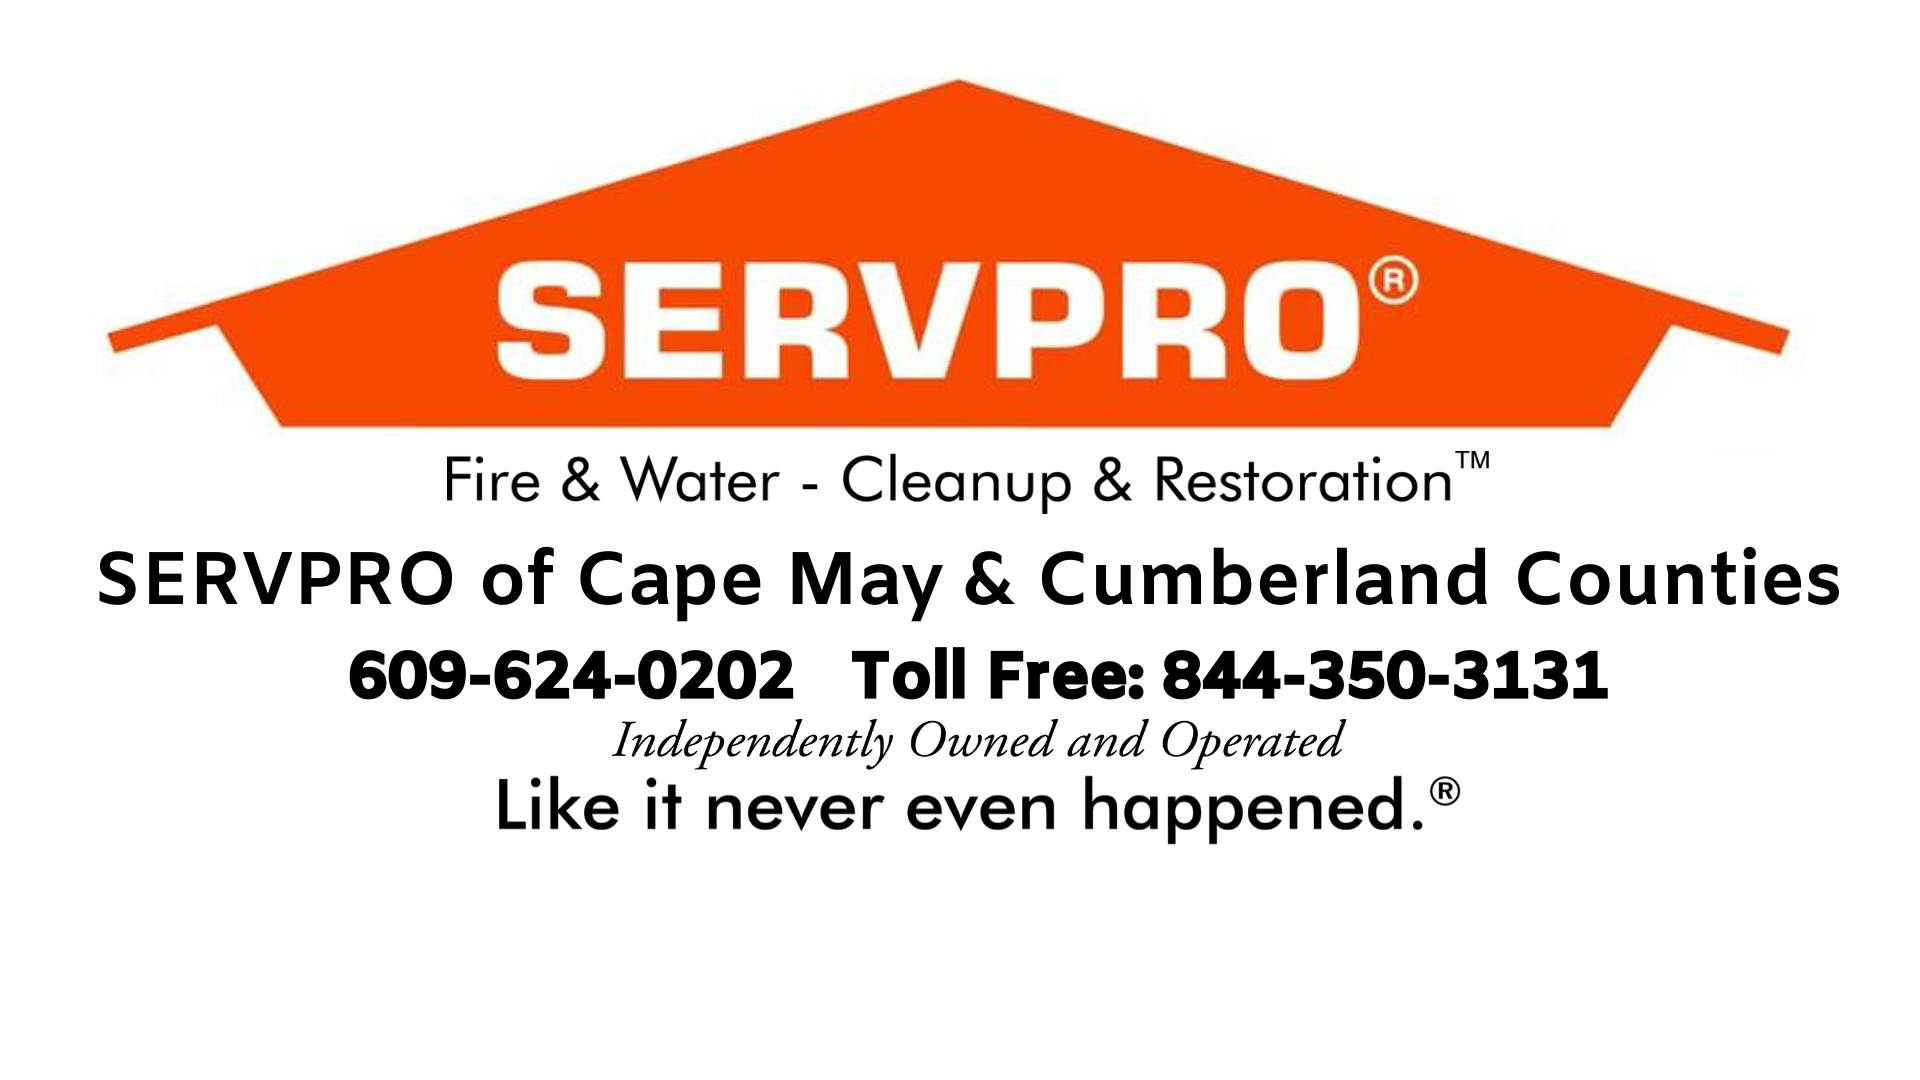 Servpro Of Cape May & Cumberland Counties